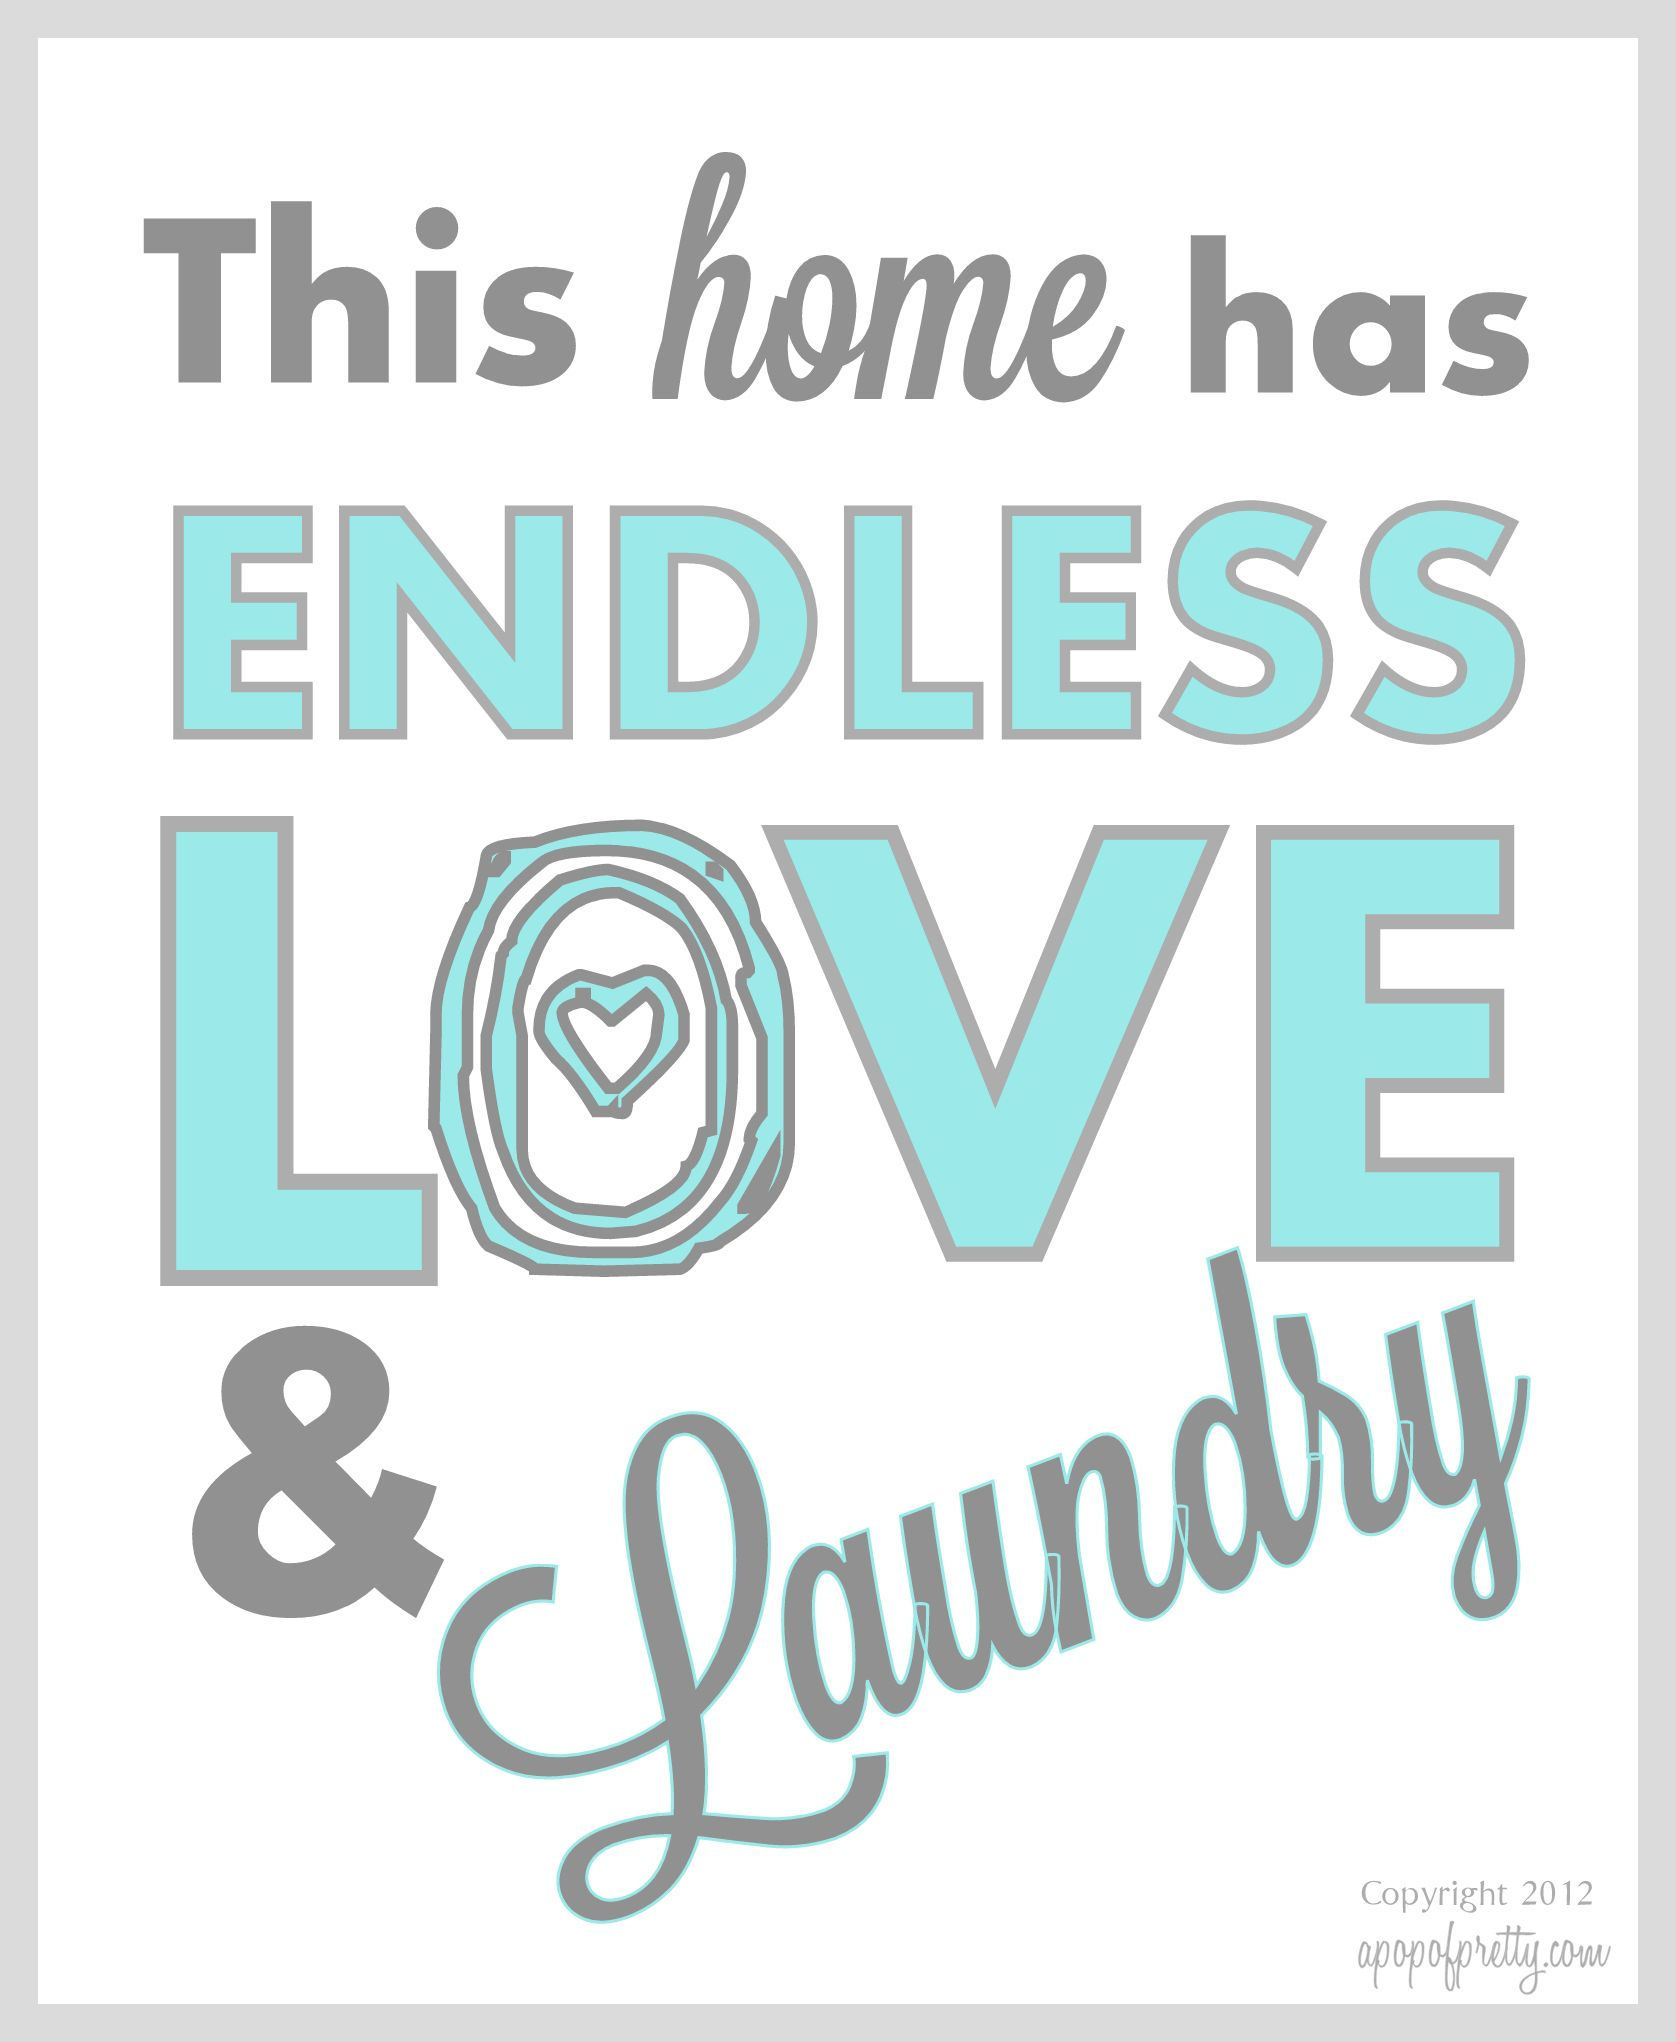 Printable Room Decor Free Printable Artwork Endless Love Laundry Now In More